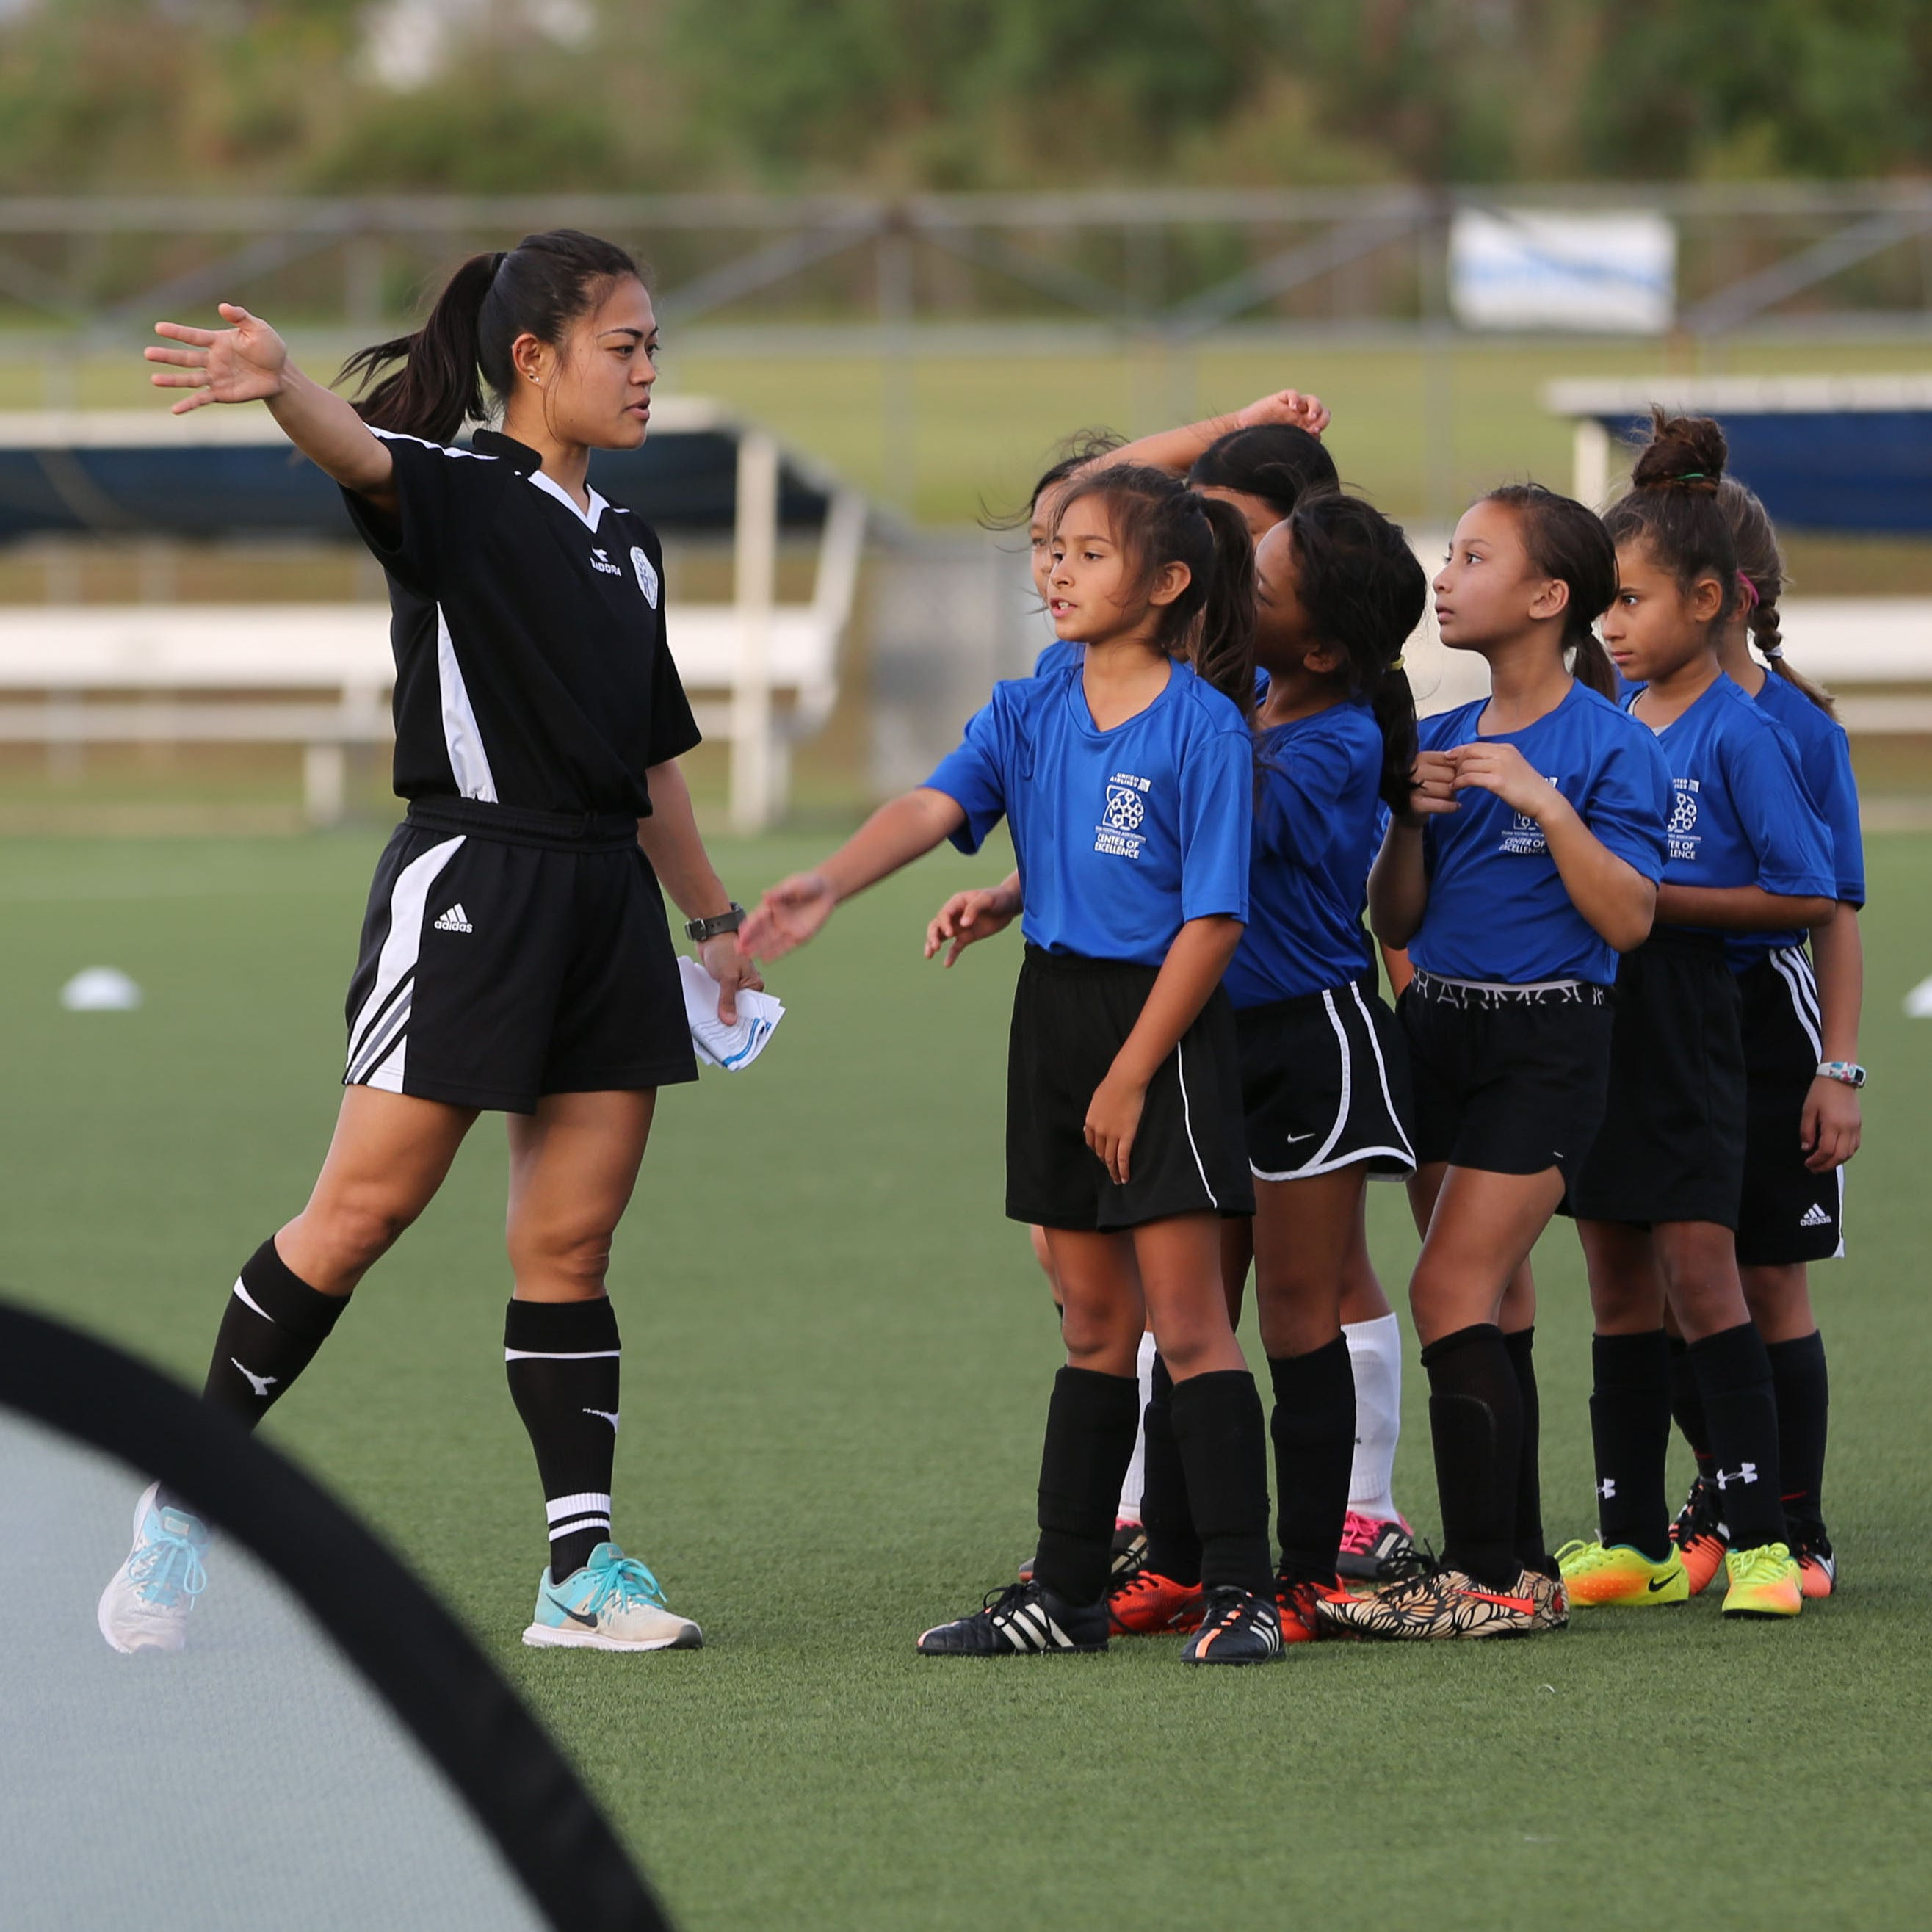 Youth soccer players can register for Center of Excellence